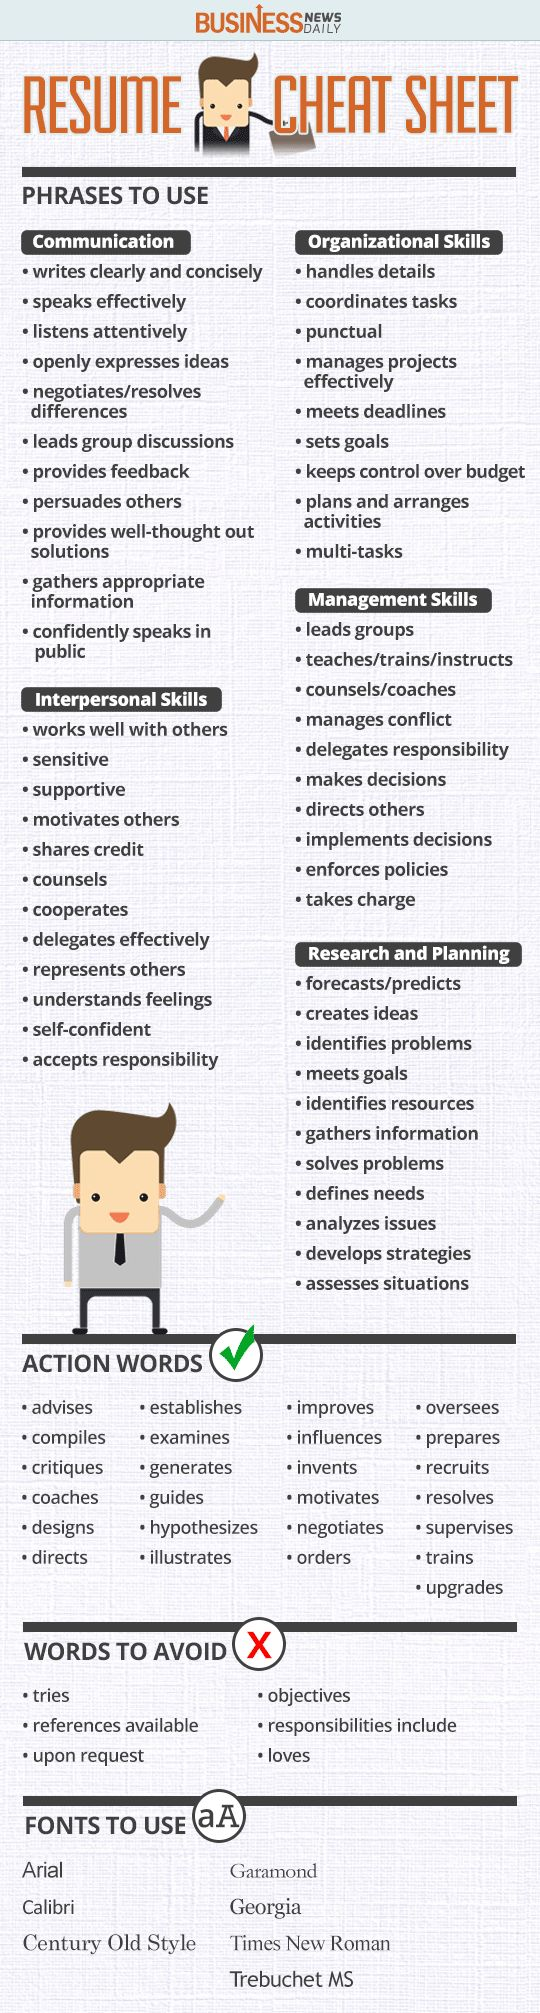 Opposenewapstandardsus  Seductive  Ideas About Resume On Pinterest  Cv Format Resume  With Outstanding Resume Cheat Sheet Infographic Andrews Almost Done With A Complete Unit On Employment Which With Divine How Many Pages Resume Also Child Actor Resume In Addition Job Resume Template Word And A Great Resume As Well As Resumes For Students Additionally Skills List Resume From Pinterestcom With Opposenewapstandardsus  Outstanding  Ideas About Resume On Pinterest  Cv Format Resume  With Divine Resume Cheat Sheet Infographic Andrews Almost Done With A Complete Unit On Employment Which And Seductive How Many Pages Resume Also Child Actor Resume In Addition Job Resume Template Word From Pinterestcom